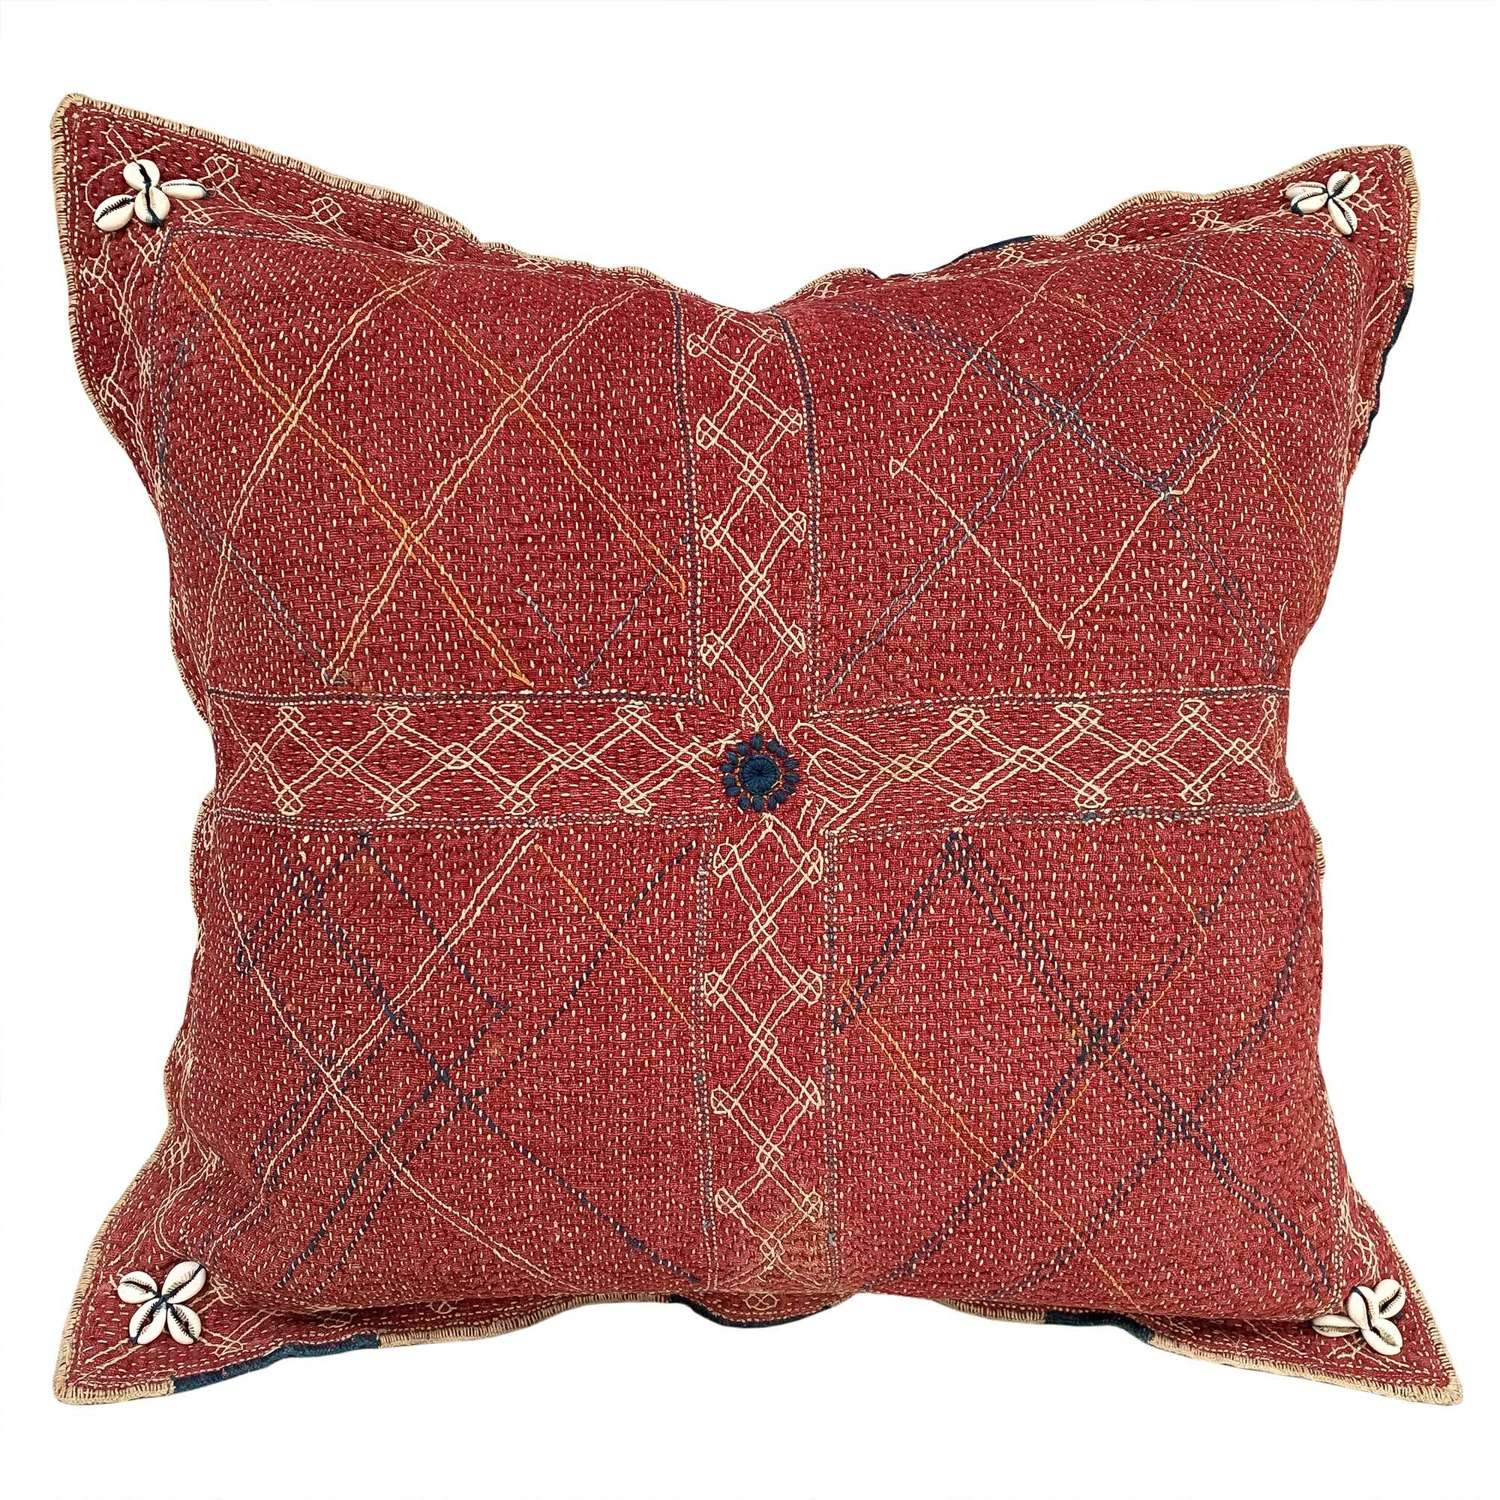 XL Banjara cushion